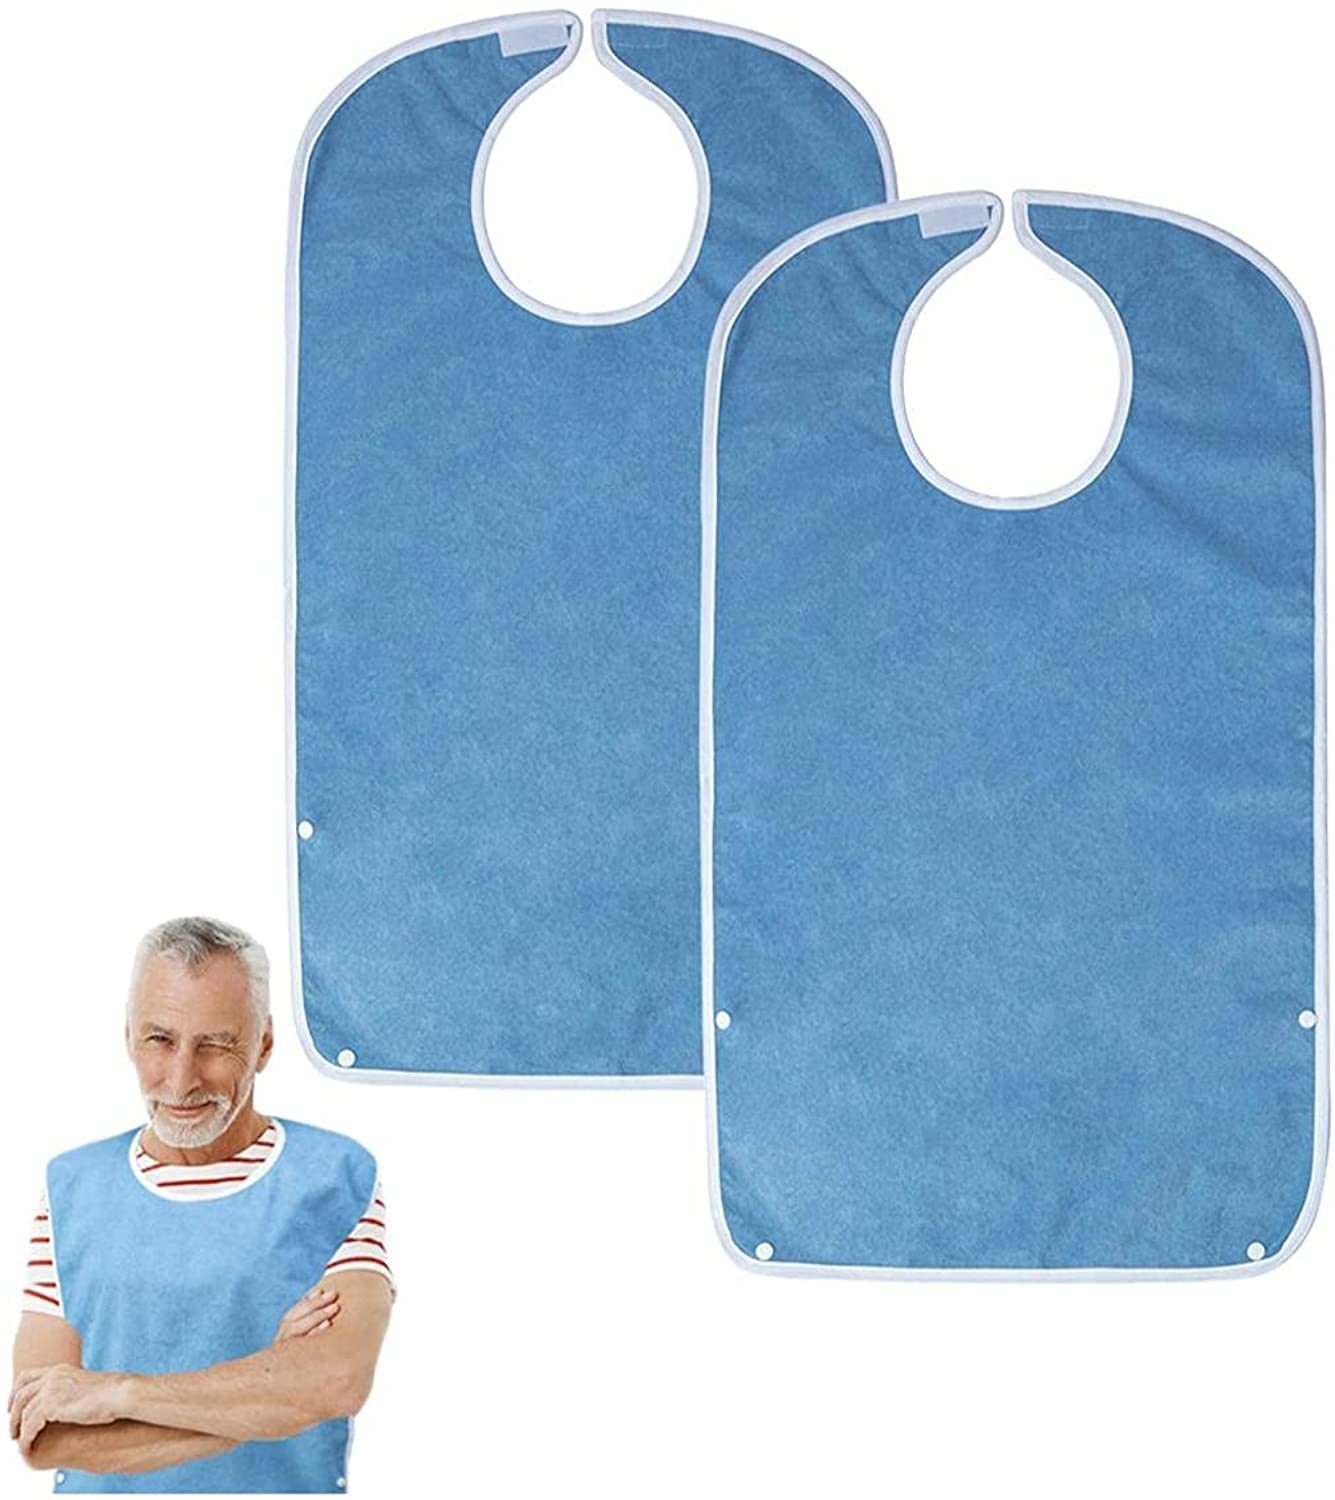 Adult Bibs for Eating, Waterproof Clothing Protector with Premium Terry Cloth(Blue)